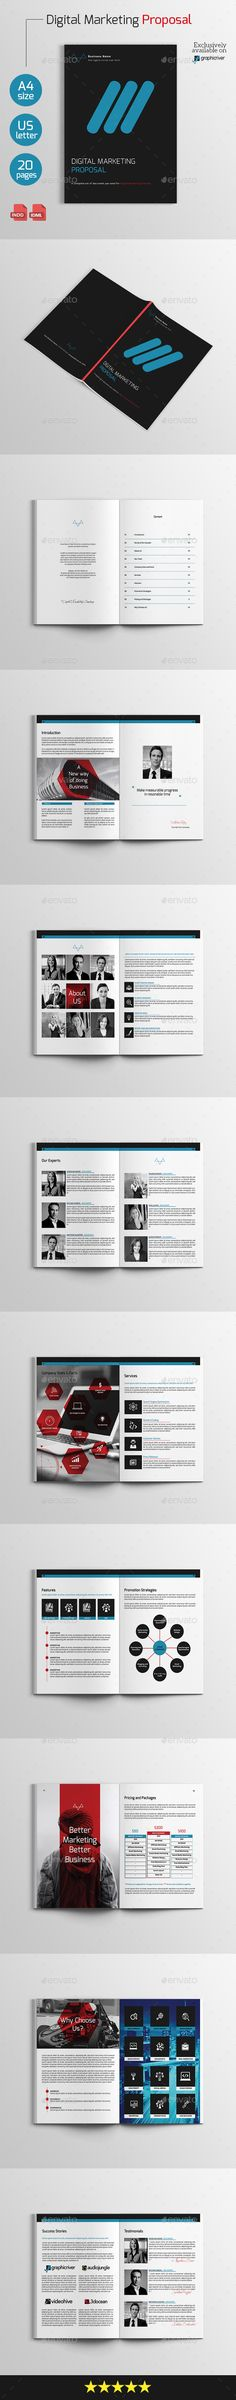 Proposal Template Vector EPS, InDesign INDD, AI Illustrator - proposal template